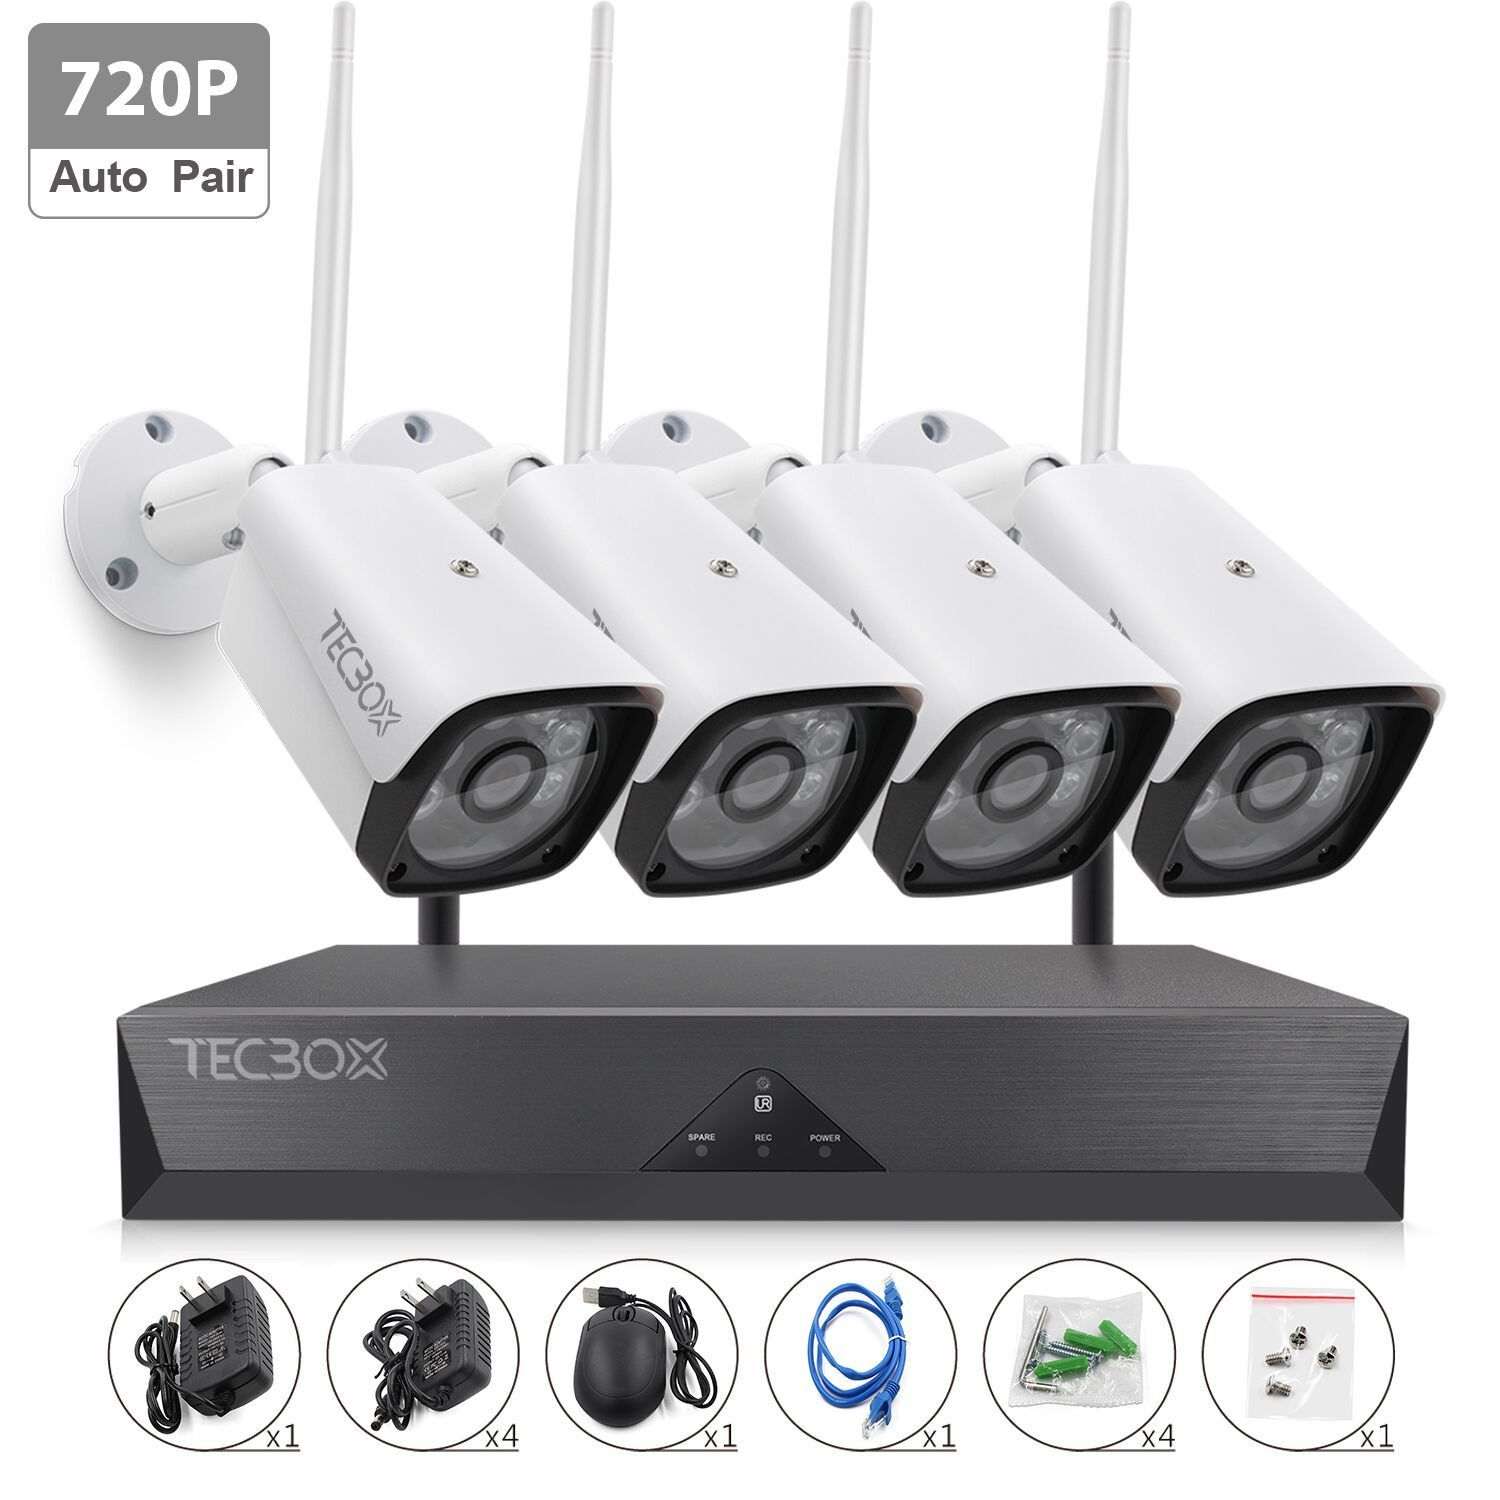 TECBOX 4CH Auto Pair Wireless Security Camera System 720P HDMI NVR, No Hard Drive, 4 x 720P HD Indoor/Outdoor Weatherproof Night Vision Wireless IP Cameras,View Remotely Wifi Security Camera